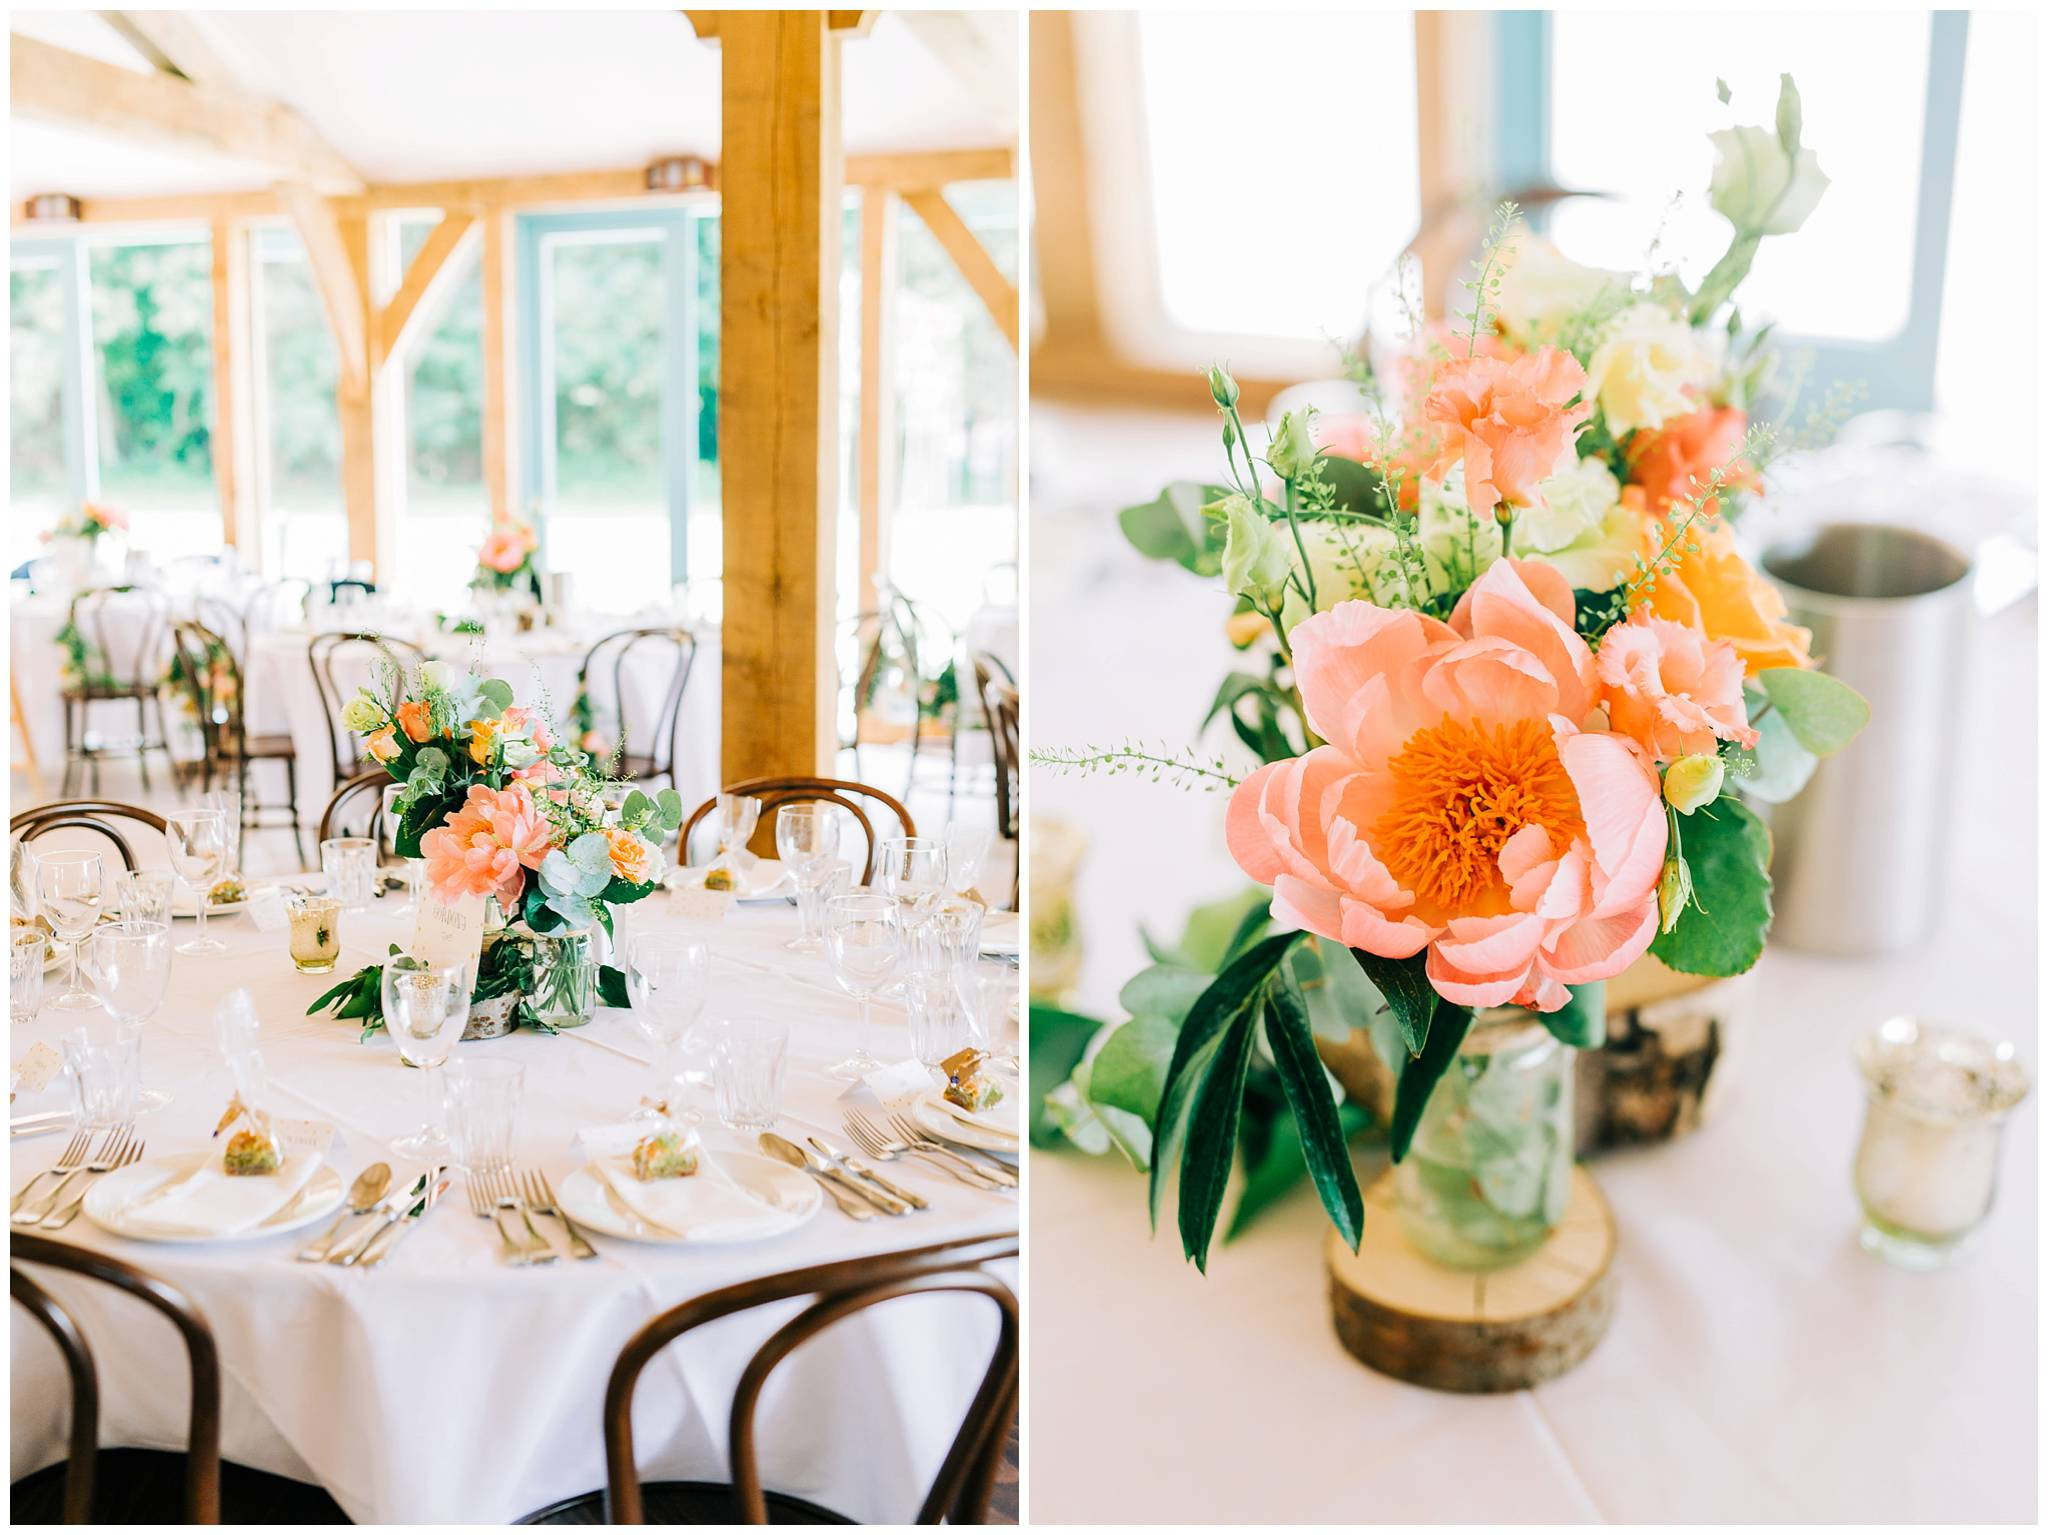 Amazing floral wedding at Hazel Gap Barn64.jpg